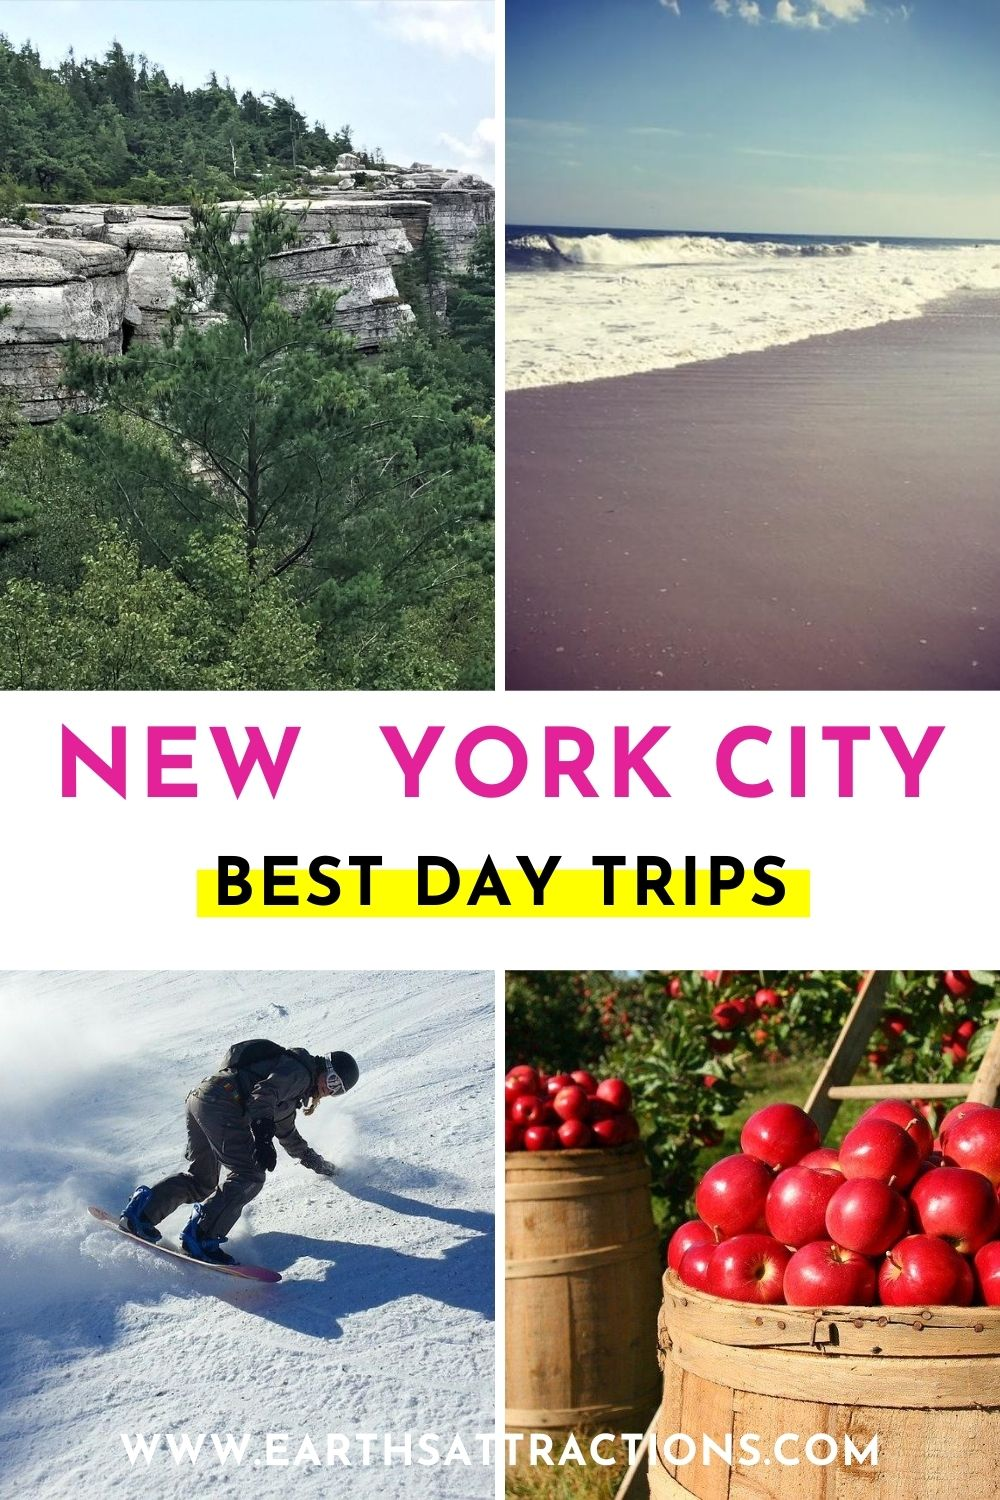 NYC day trips. Discover the best NYC getaways to try! These day trips from New York City will allow you to make the most of your trip to NYC and to discover great outdoor attractions and have fun! #nyc #nycdaytrips #usa #usatravel #earthsattractions #northamerica #nyctrips #nycgetaways